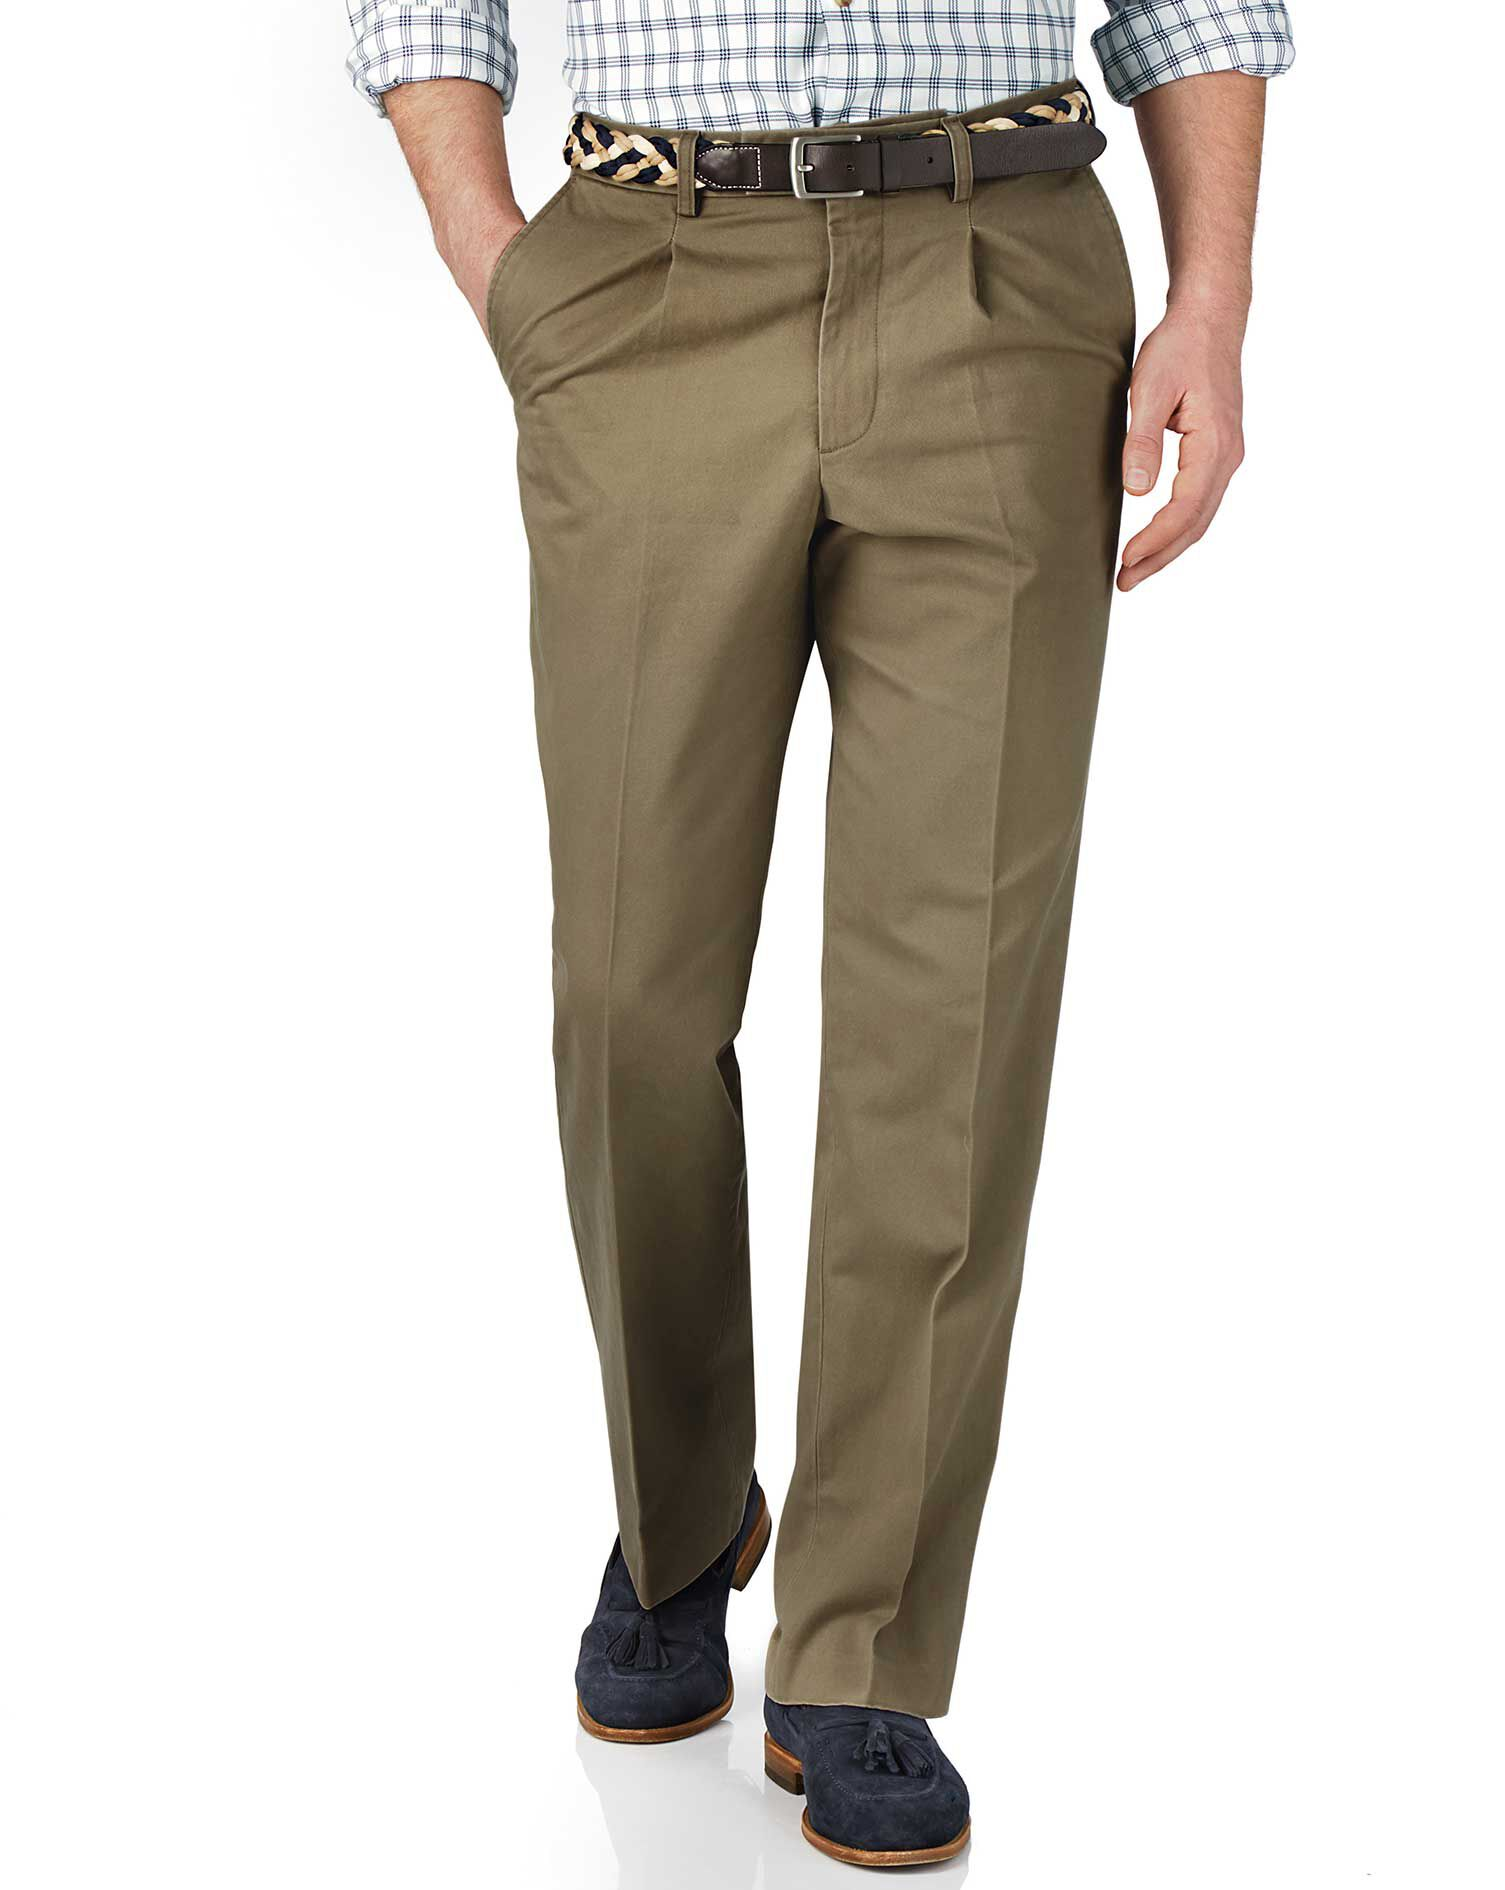 Beige Classic Fit Single Pleat Cotton Chino Trousers Size W32 L34 by Charles Tyrwhitt